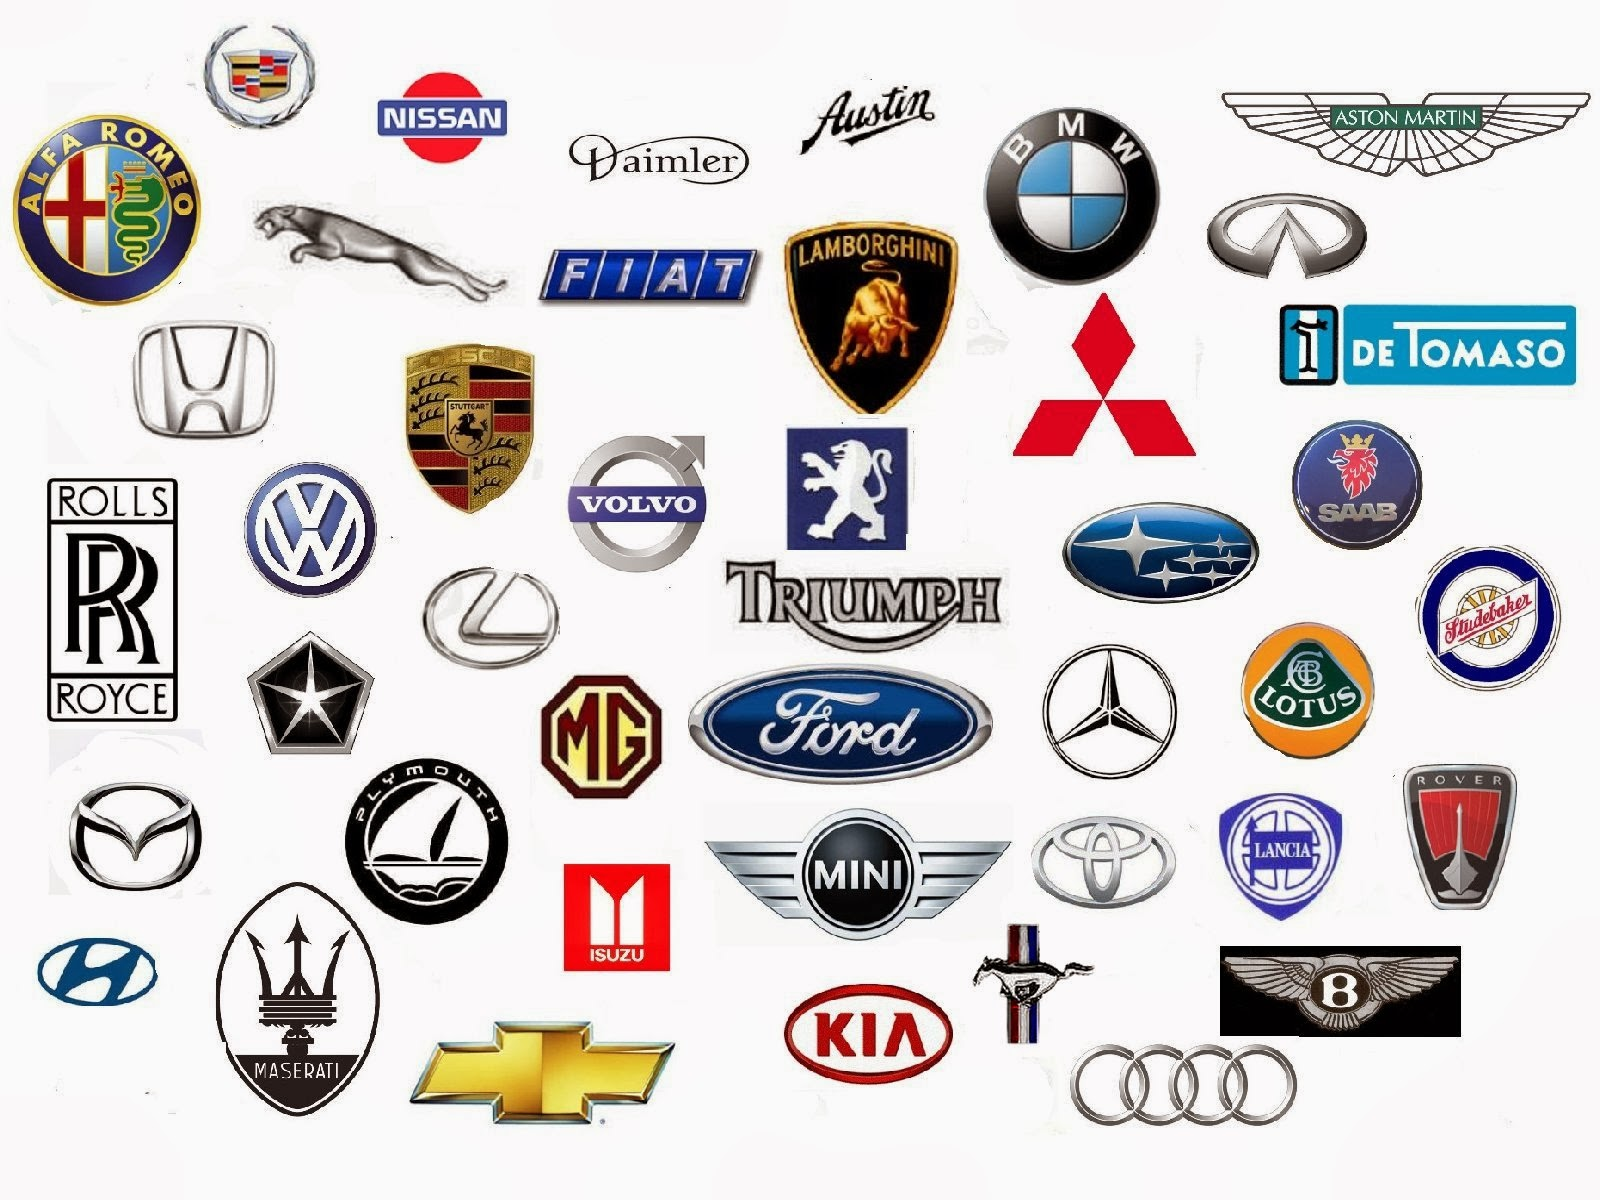 Car Logos And Brands | Cars Show Logos